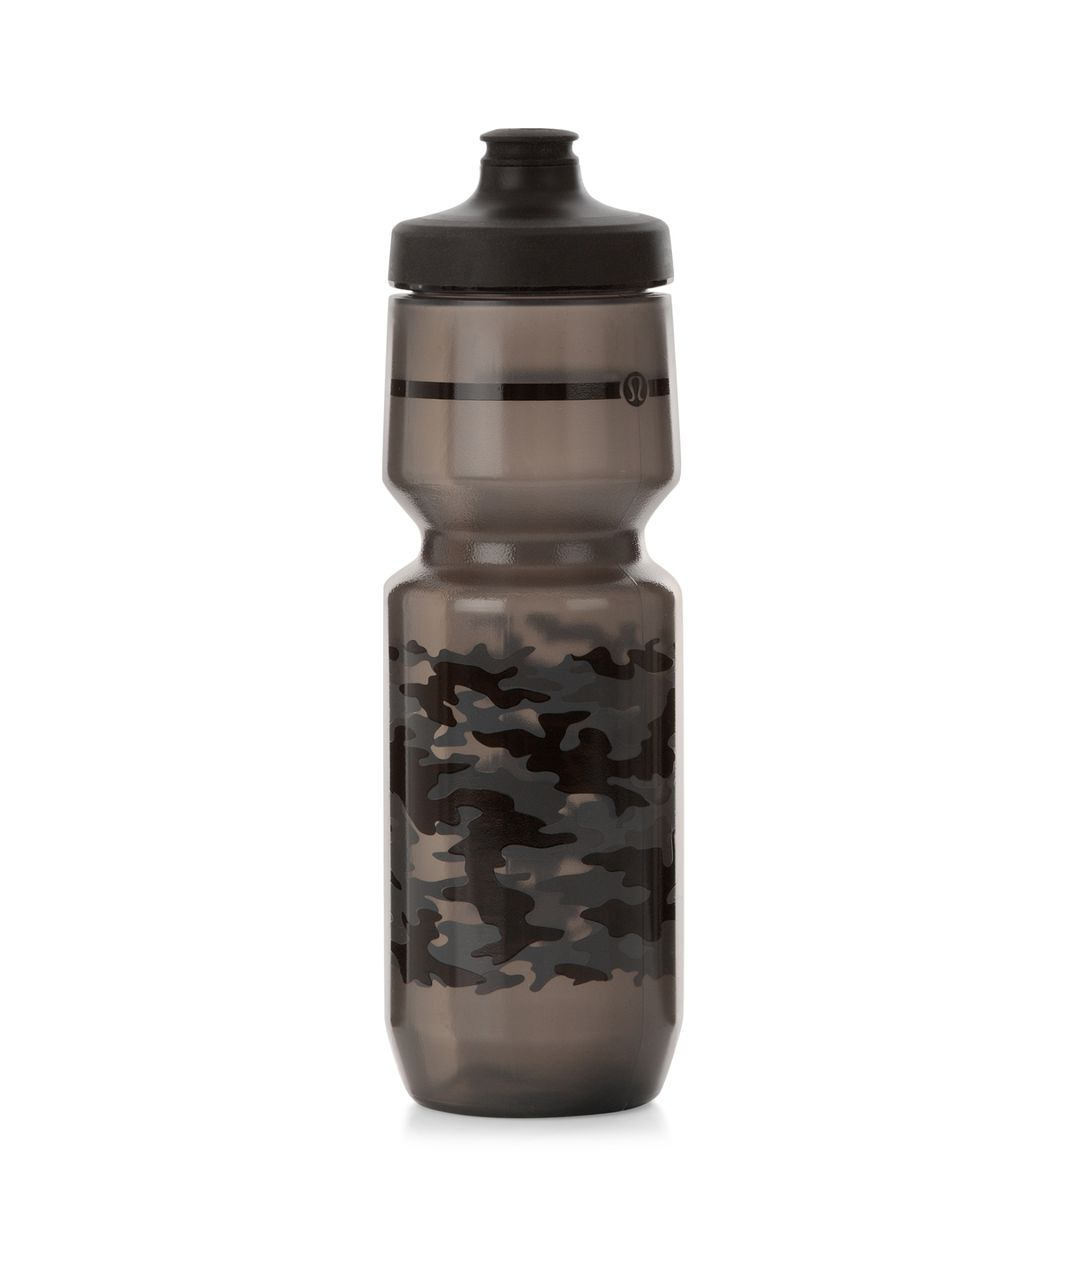 Lululemon Purist Cycling Waterbottle - Camo White Black